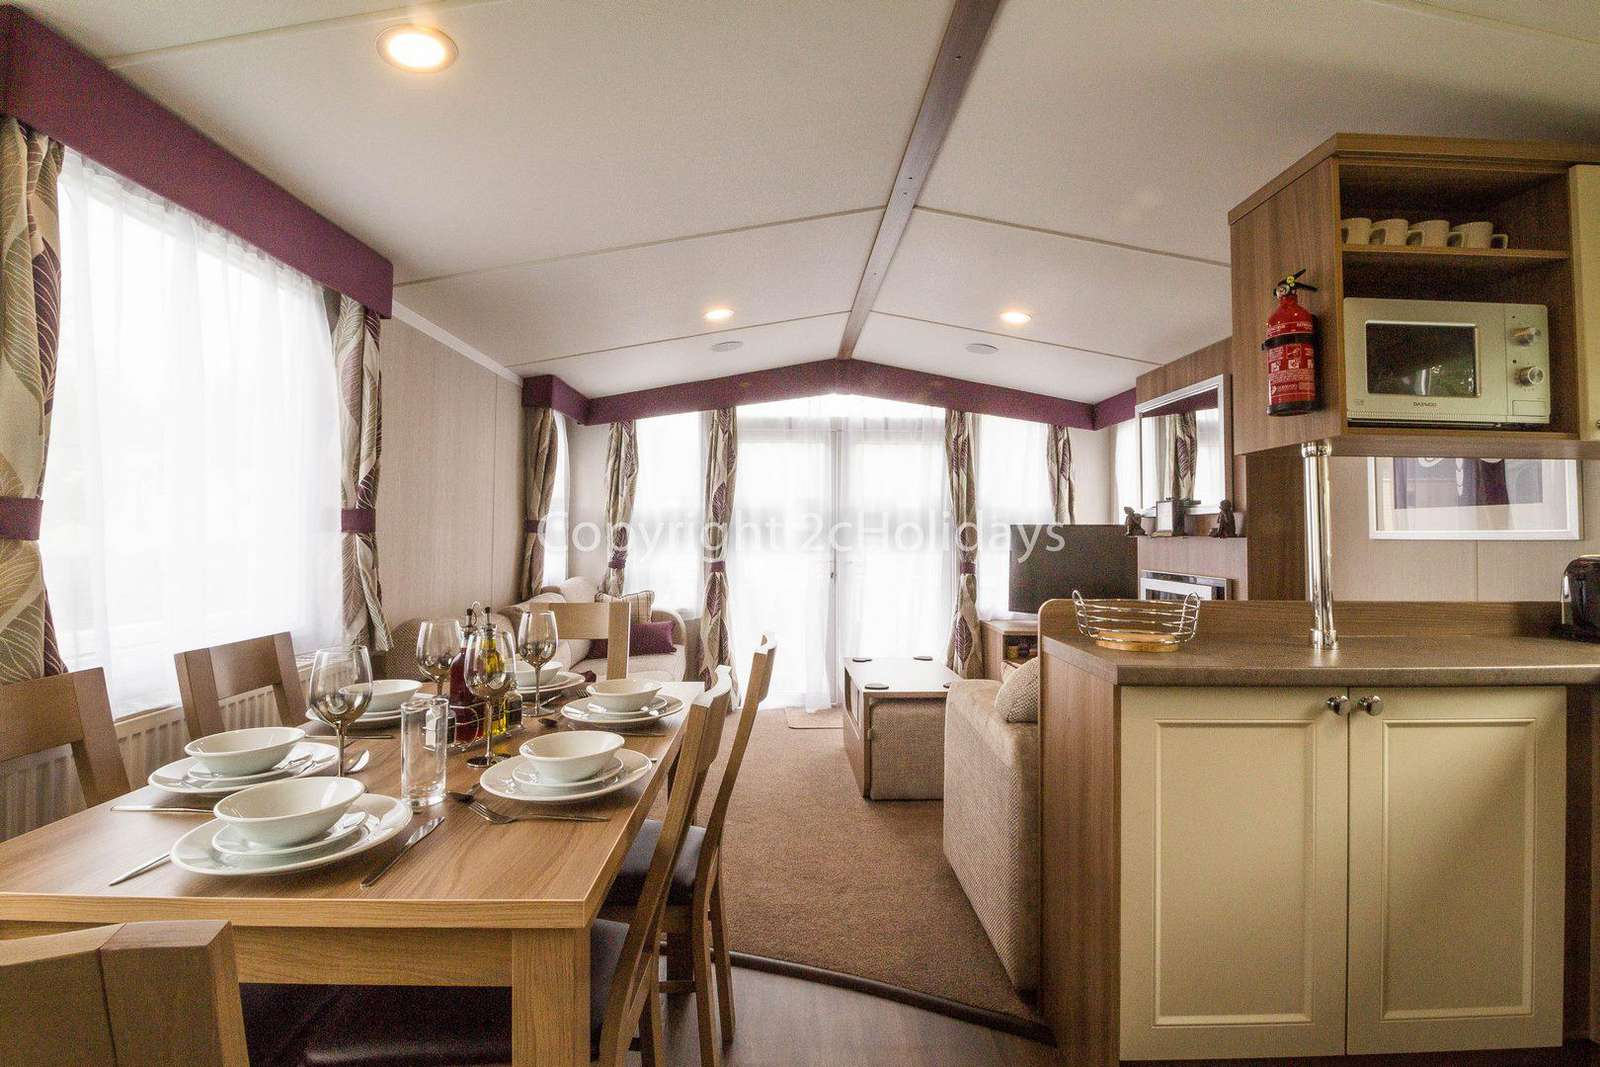 Check out our great reviews on Google for Hopton Holiday Village